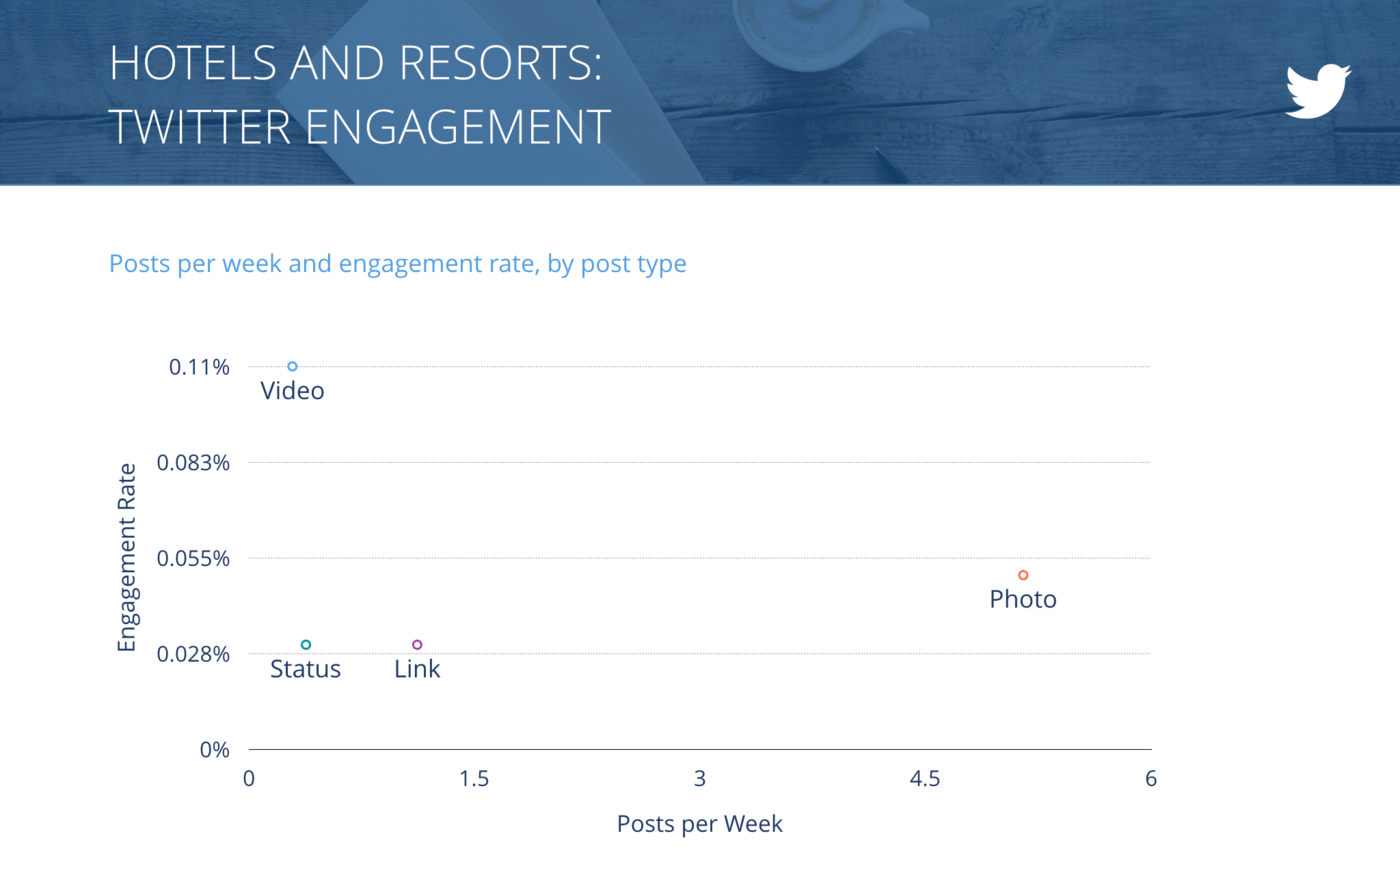 slide for Tweets per Week vs. Engagement Rate per Tweet, Hotels & Resorts